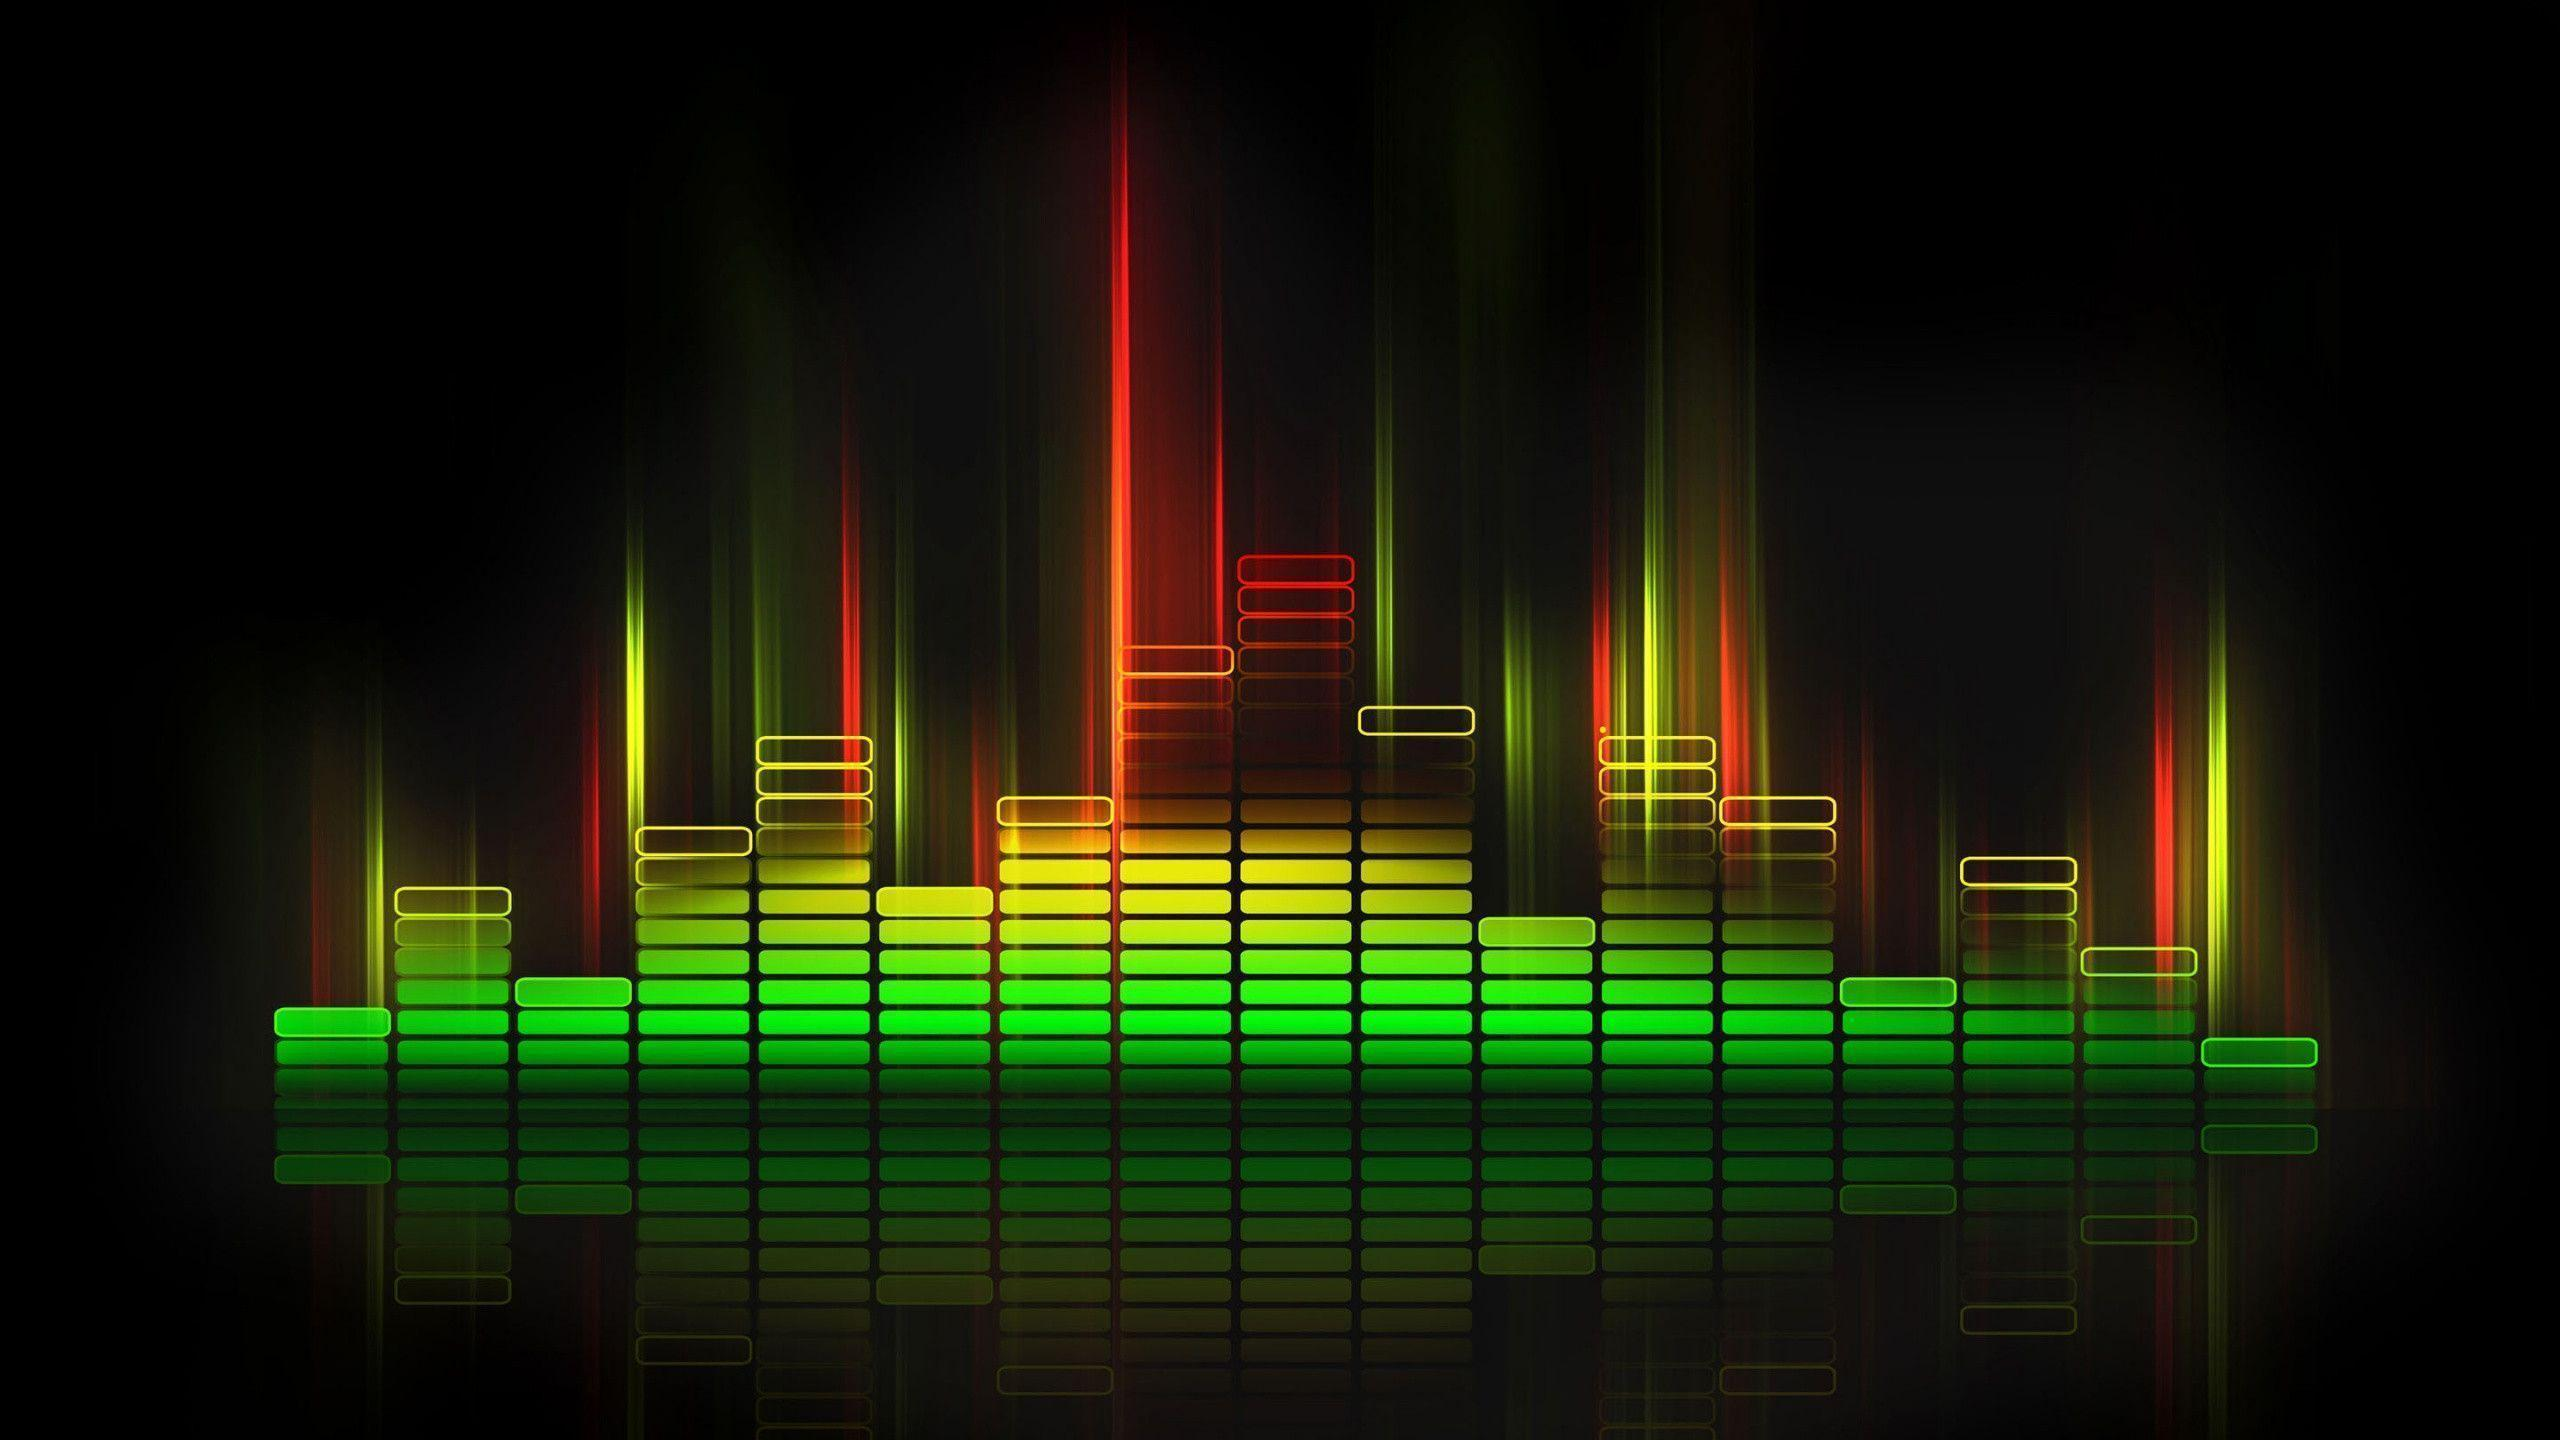 Sound Wave Wallpapers - Wallpaper Cave